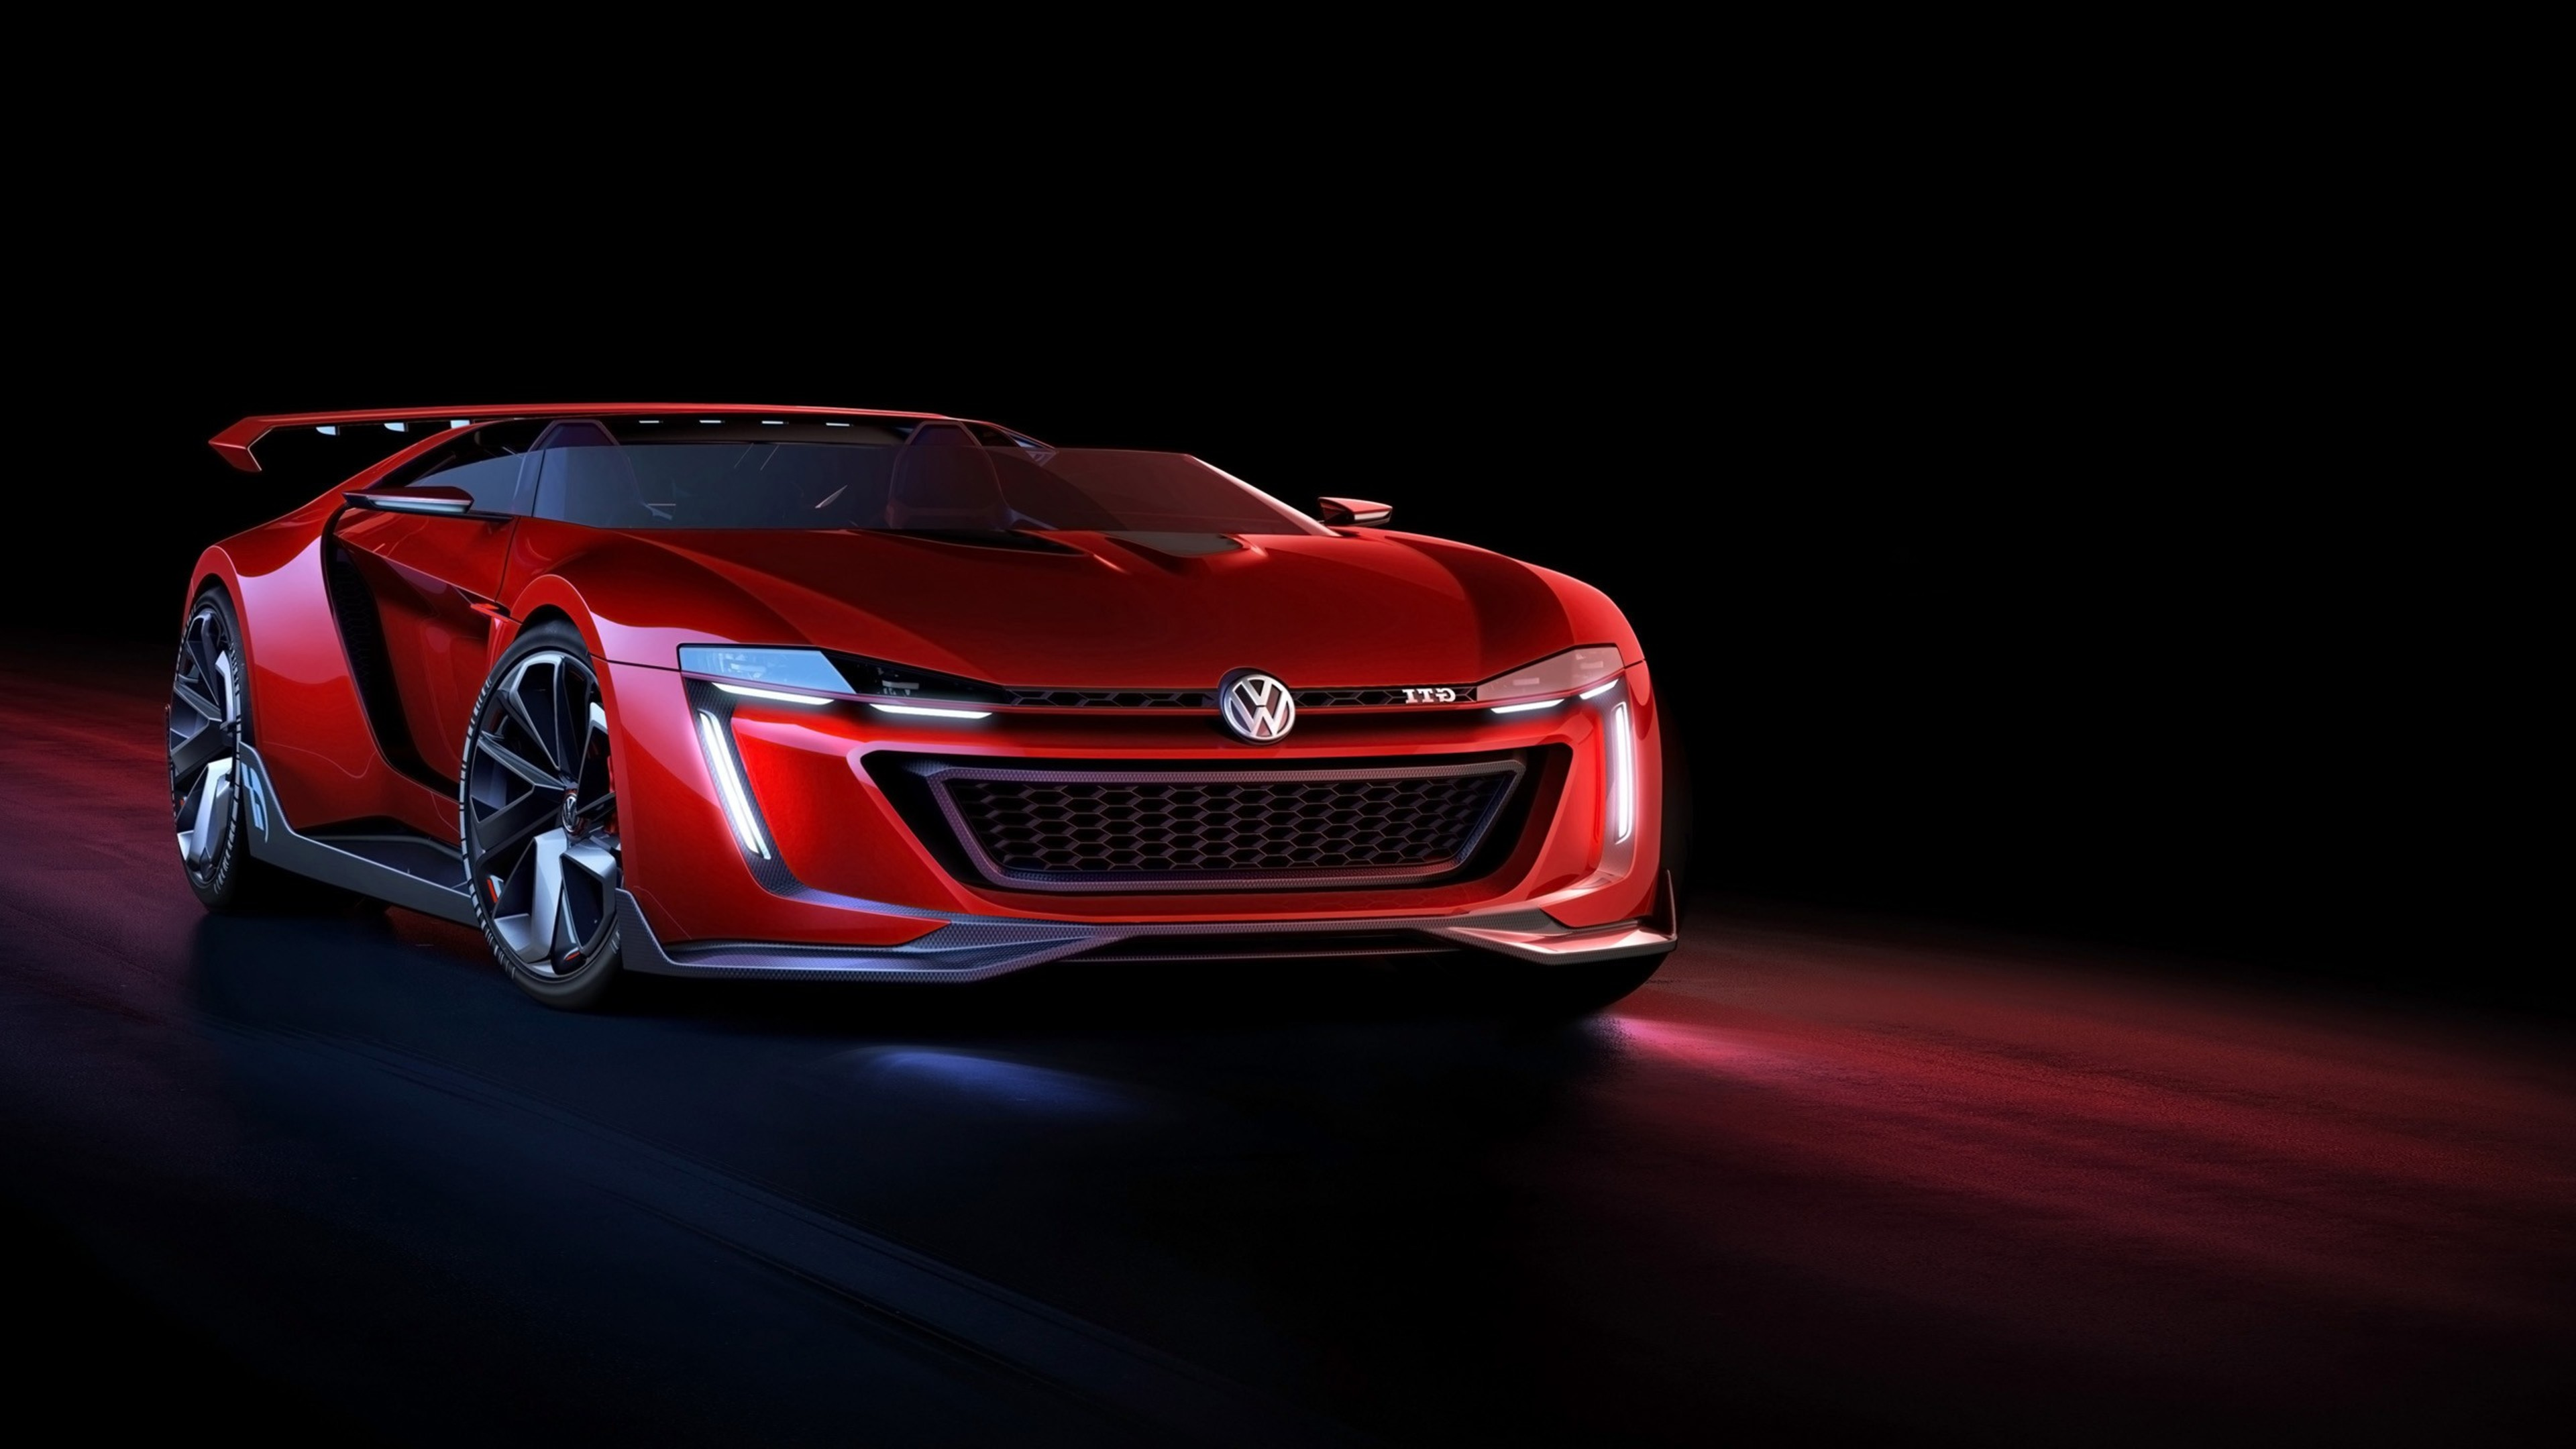 volkswagen gti roadster, hd cars, 4k wallpapers, images, backgrounds